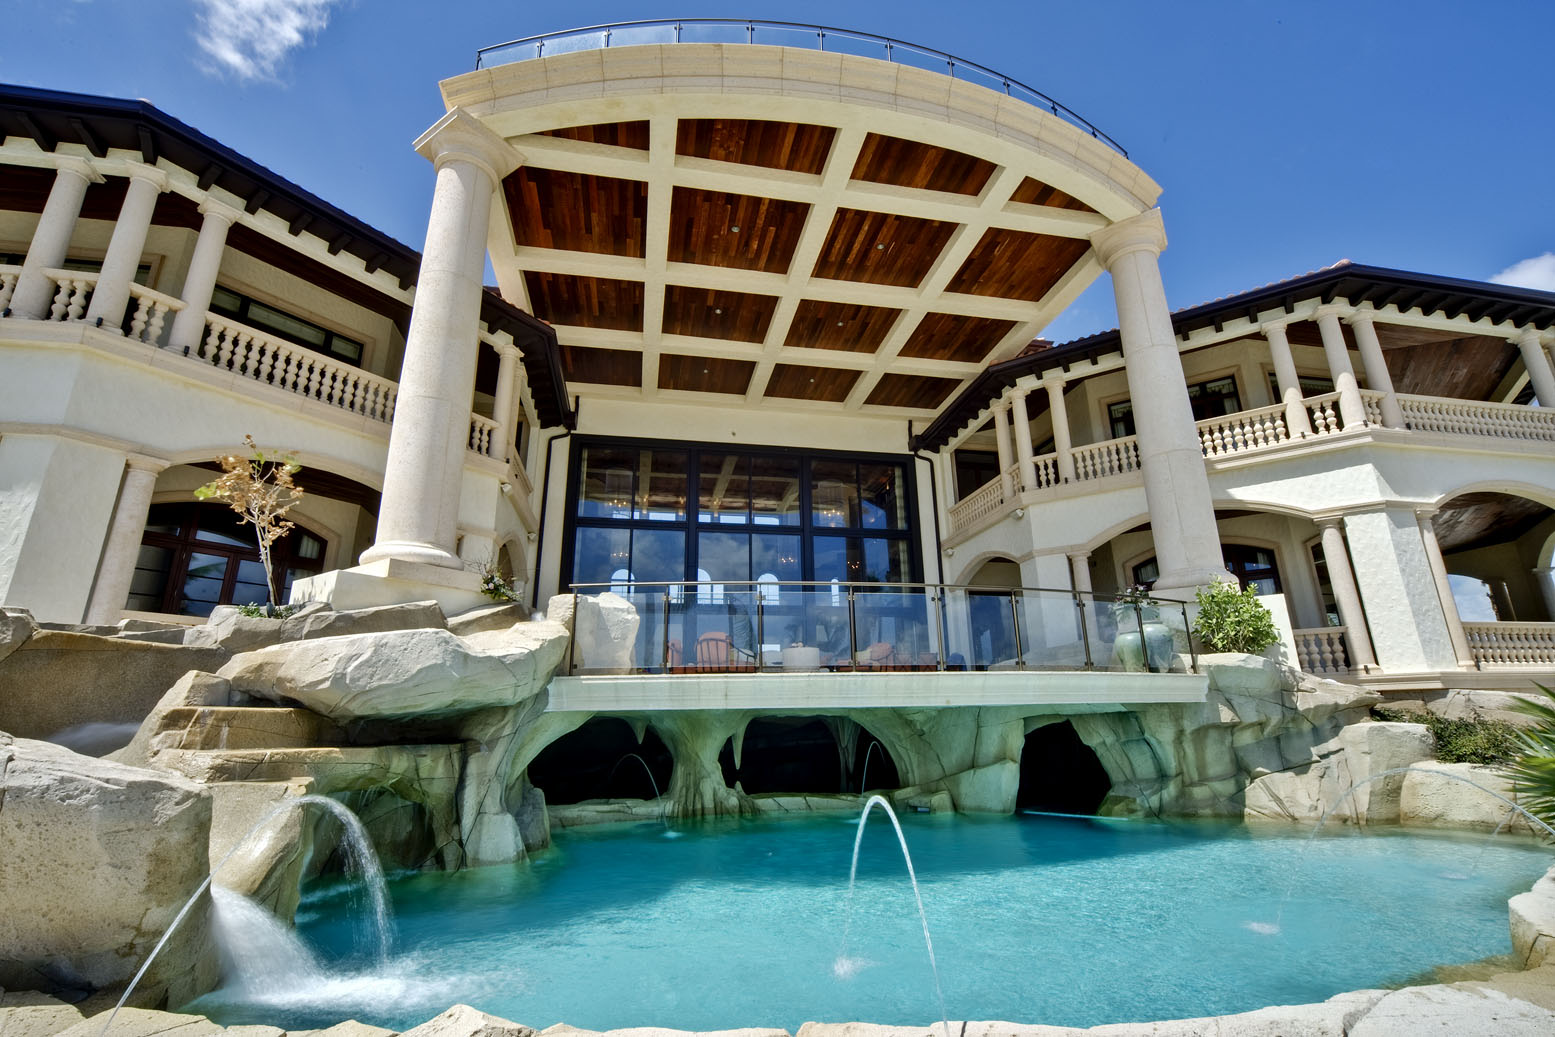 Cayman islands mega mansion homes of the rich for Luxury house